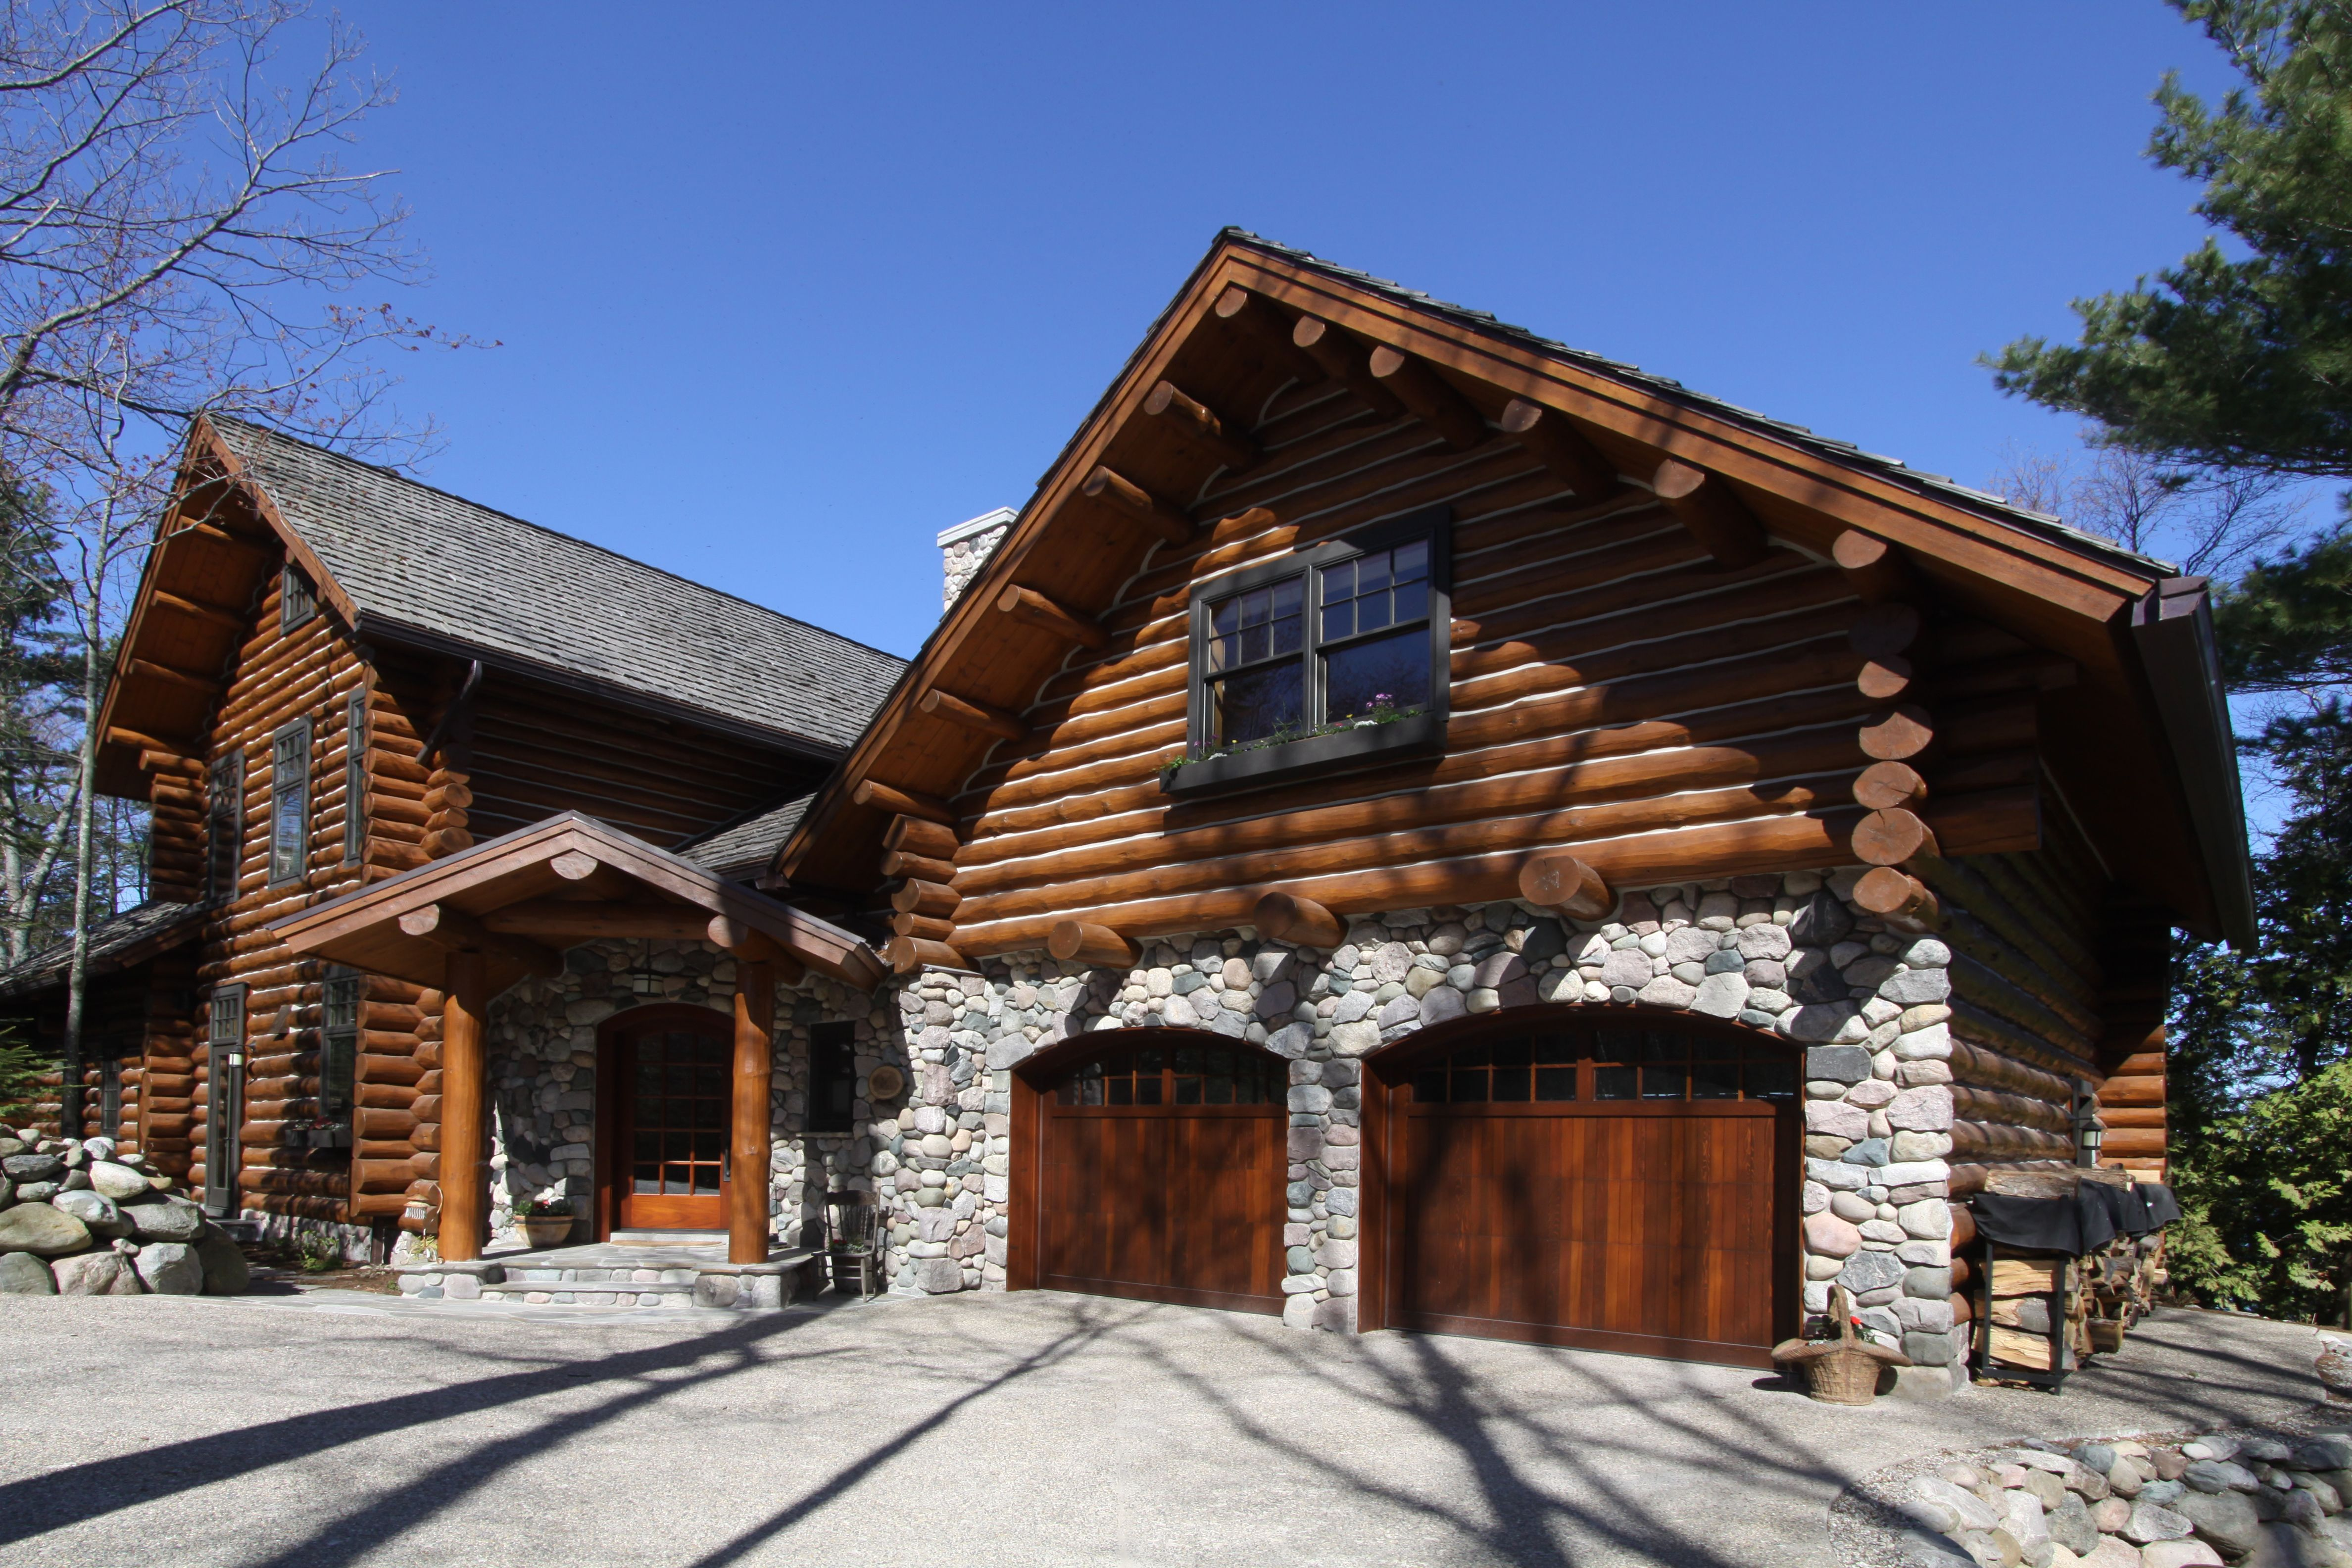 Perhaps Too Big To Be A Cabin But I Love It Hgtv Dream Homes Rustic Houses Exterior House In The Woods